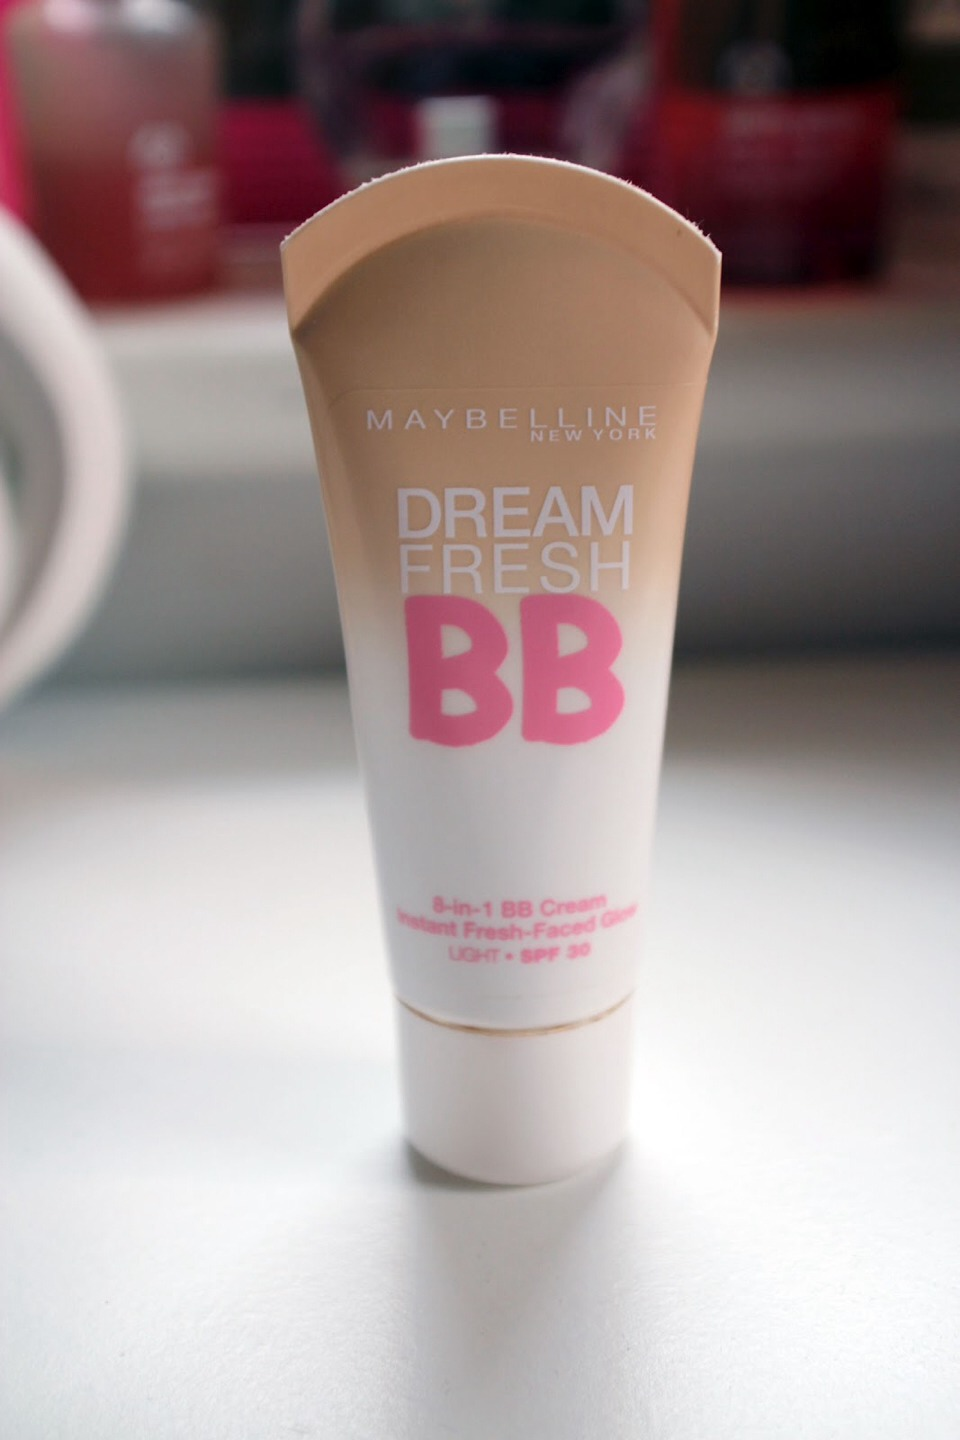 Now use foundation or concealer. I recommend using BB cream because it hides spots, redness and blemishes and also hydrates and smoothes skin :)